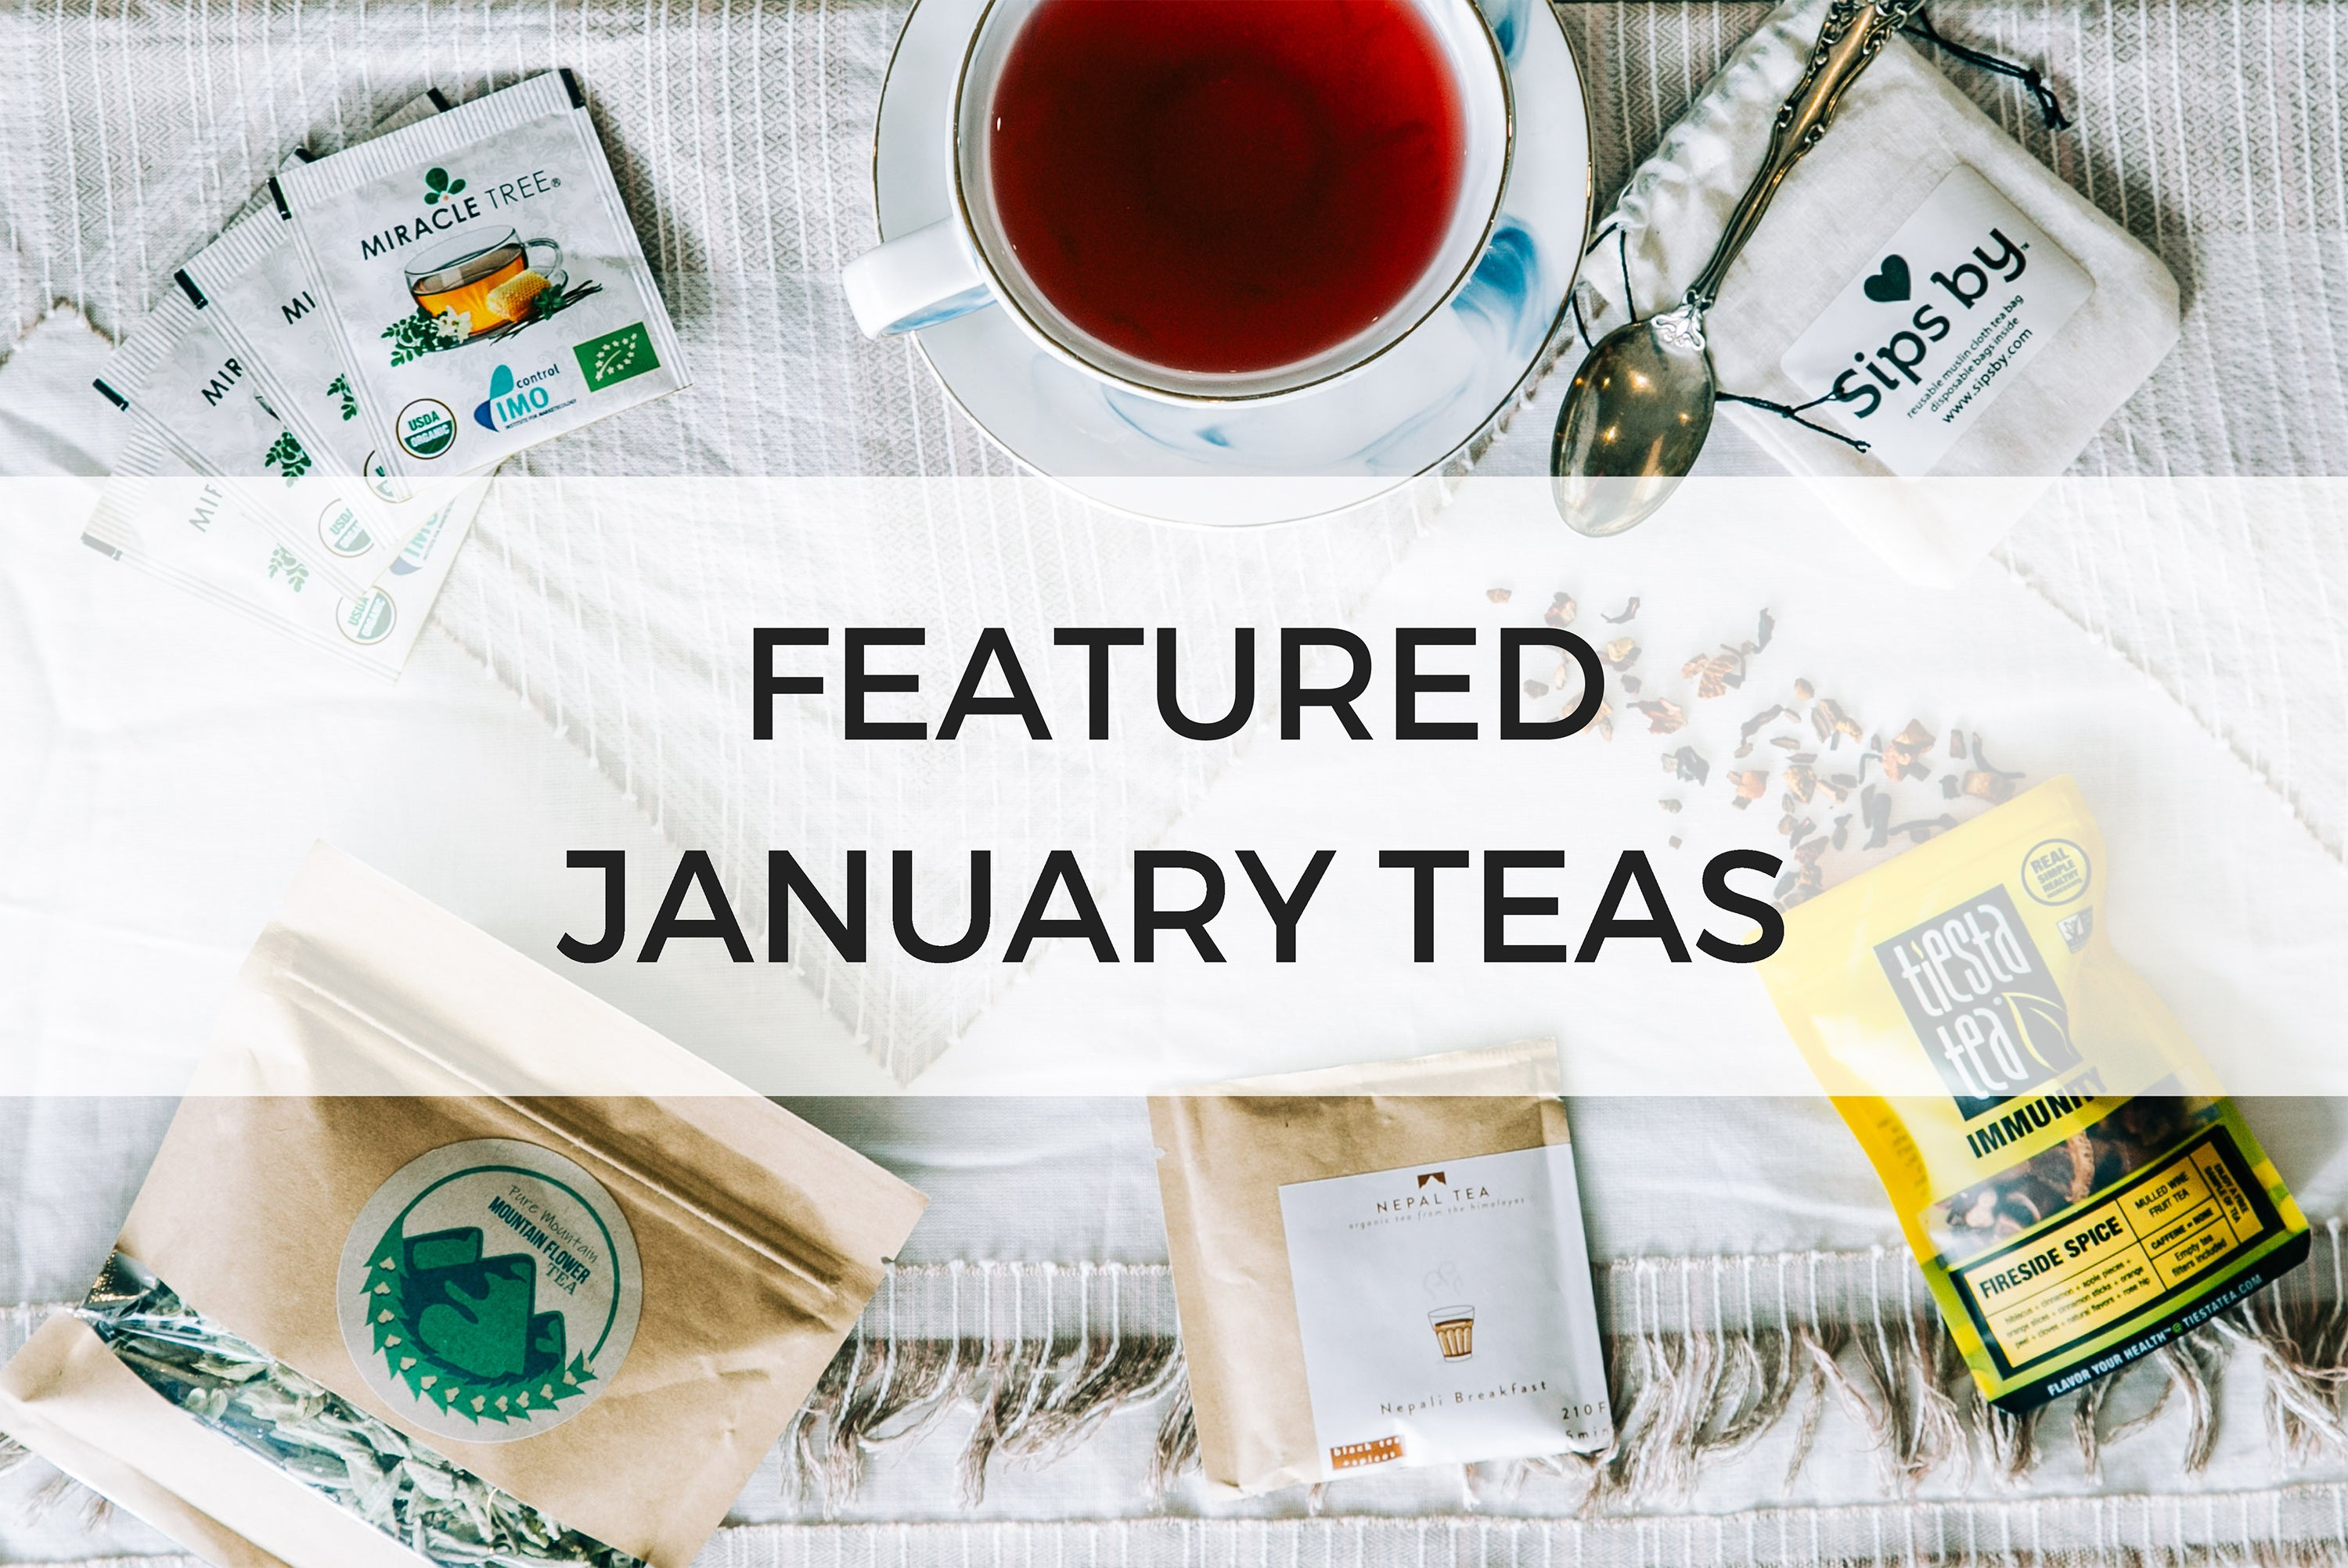 FEATURED JANUARY 2019 TEAS